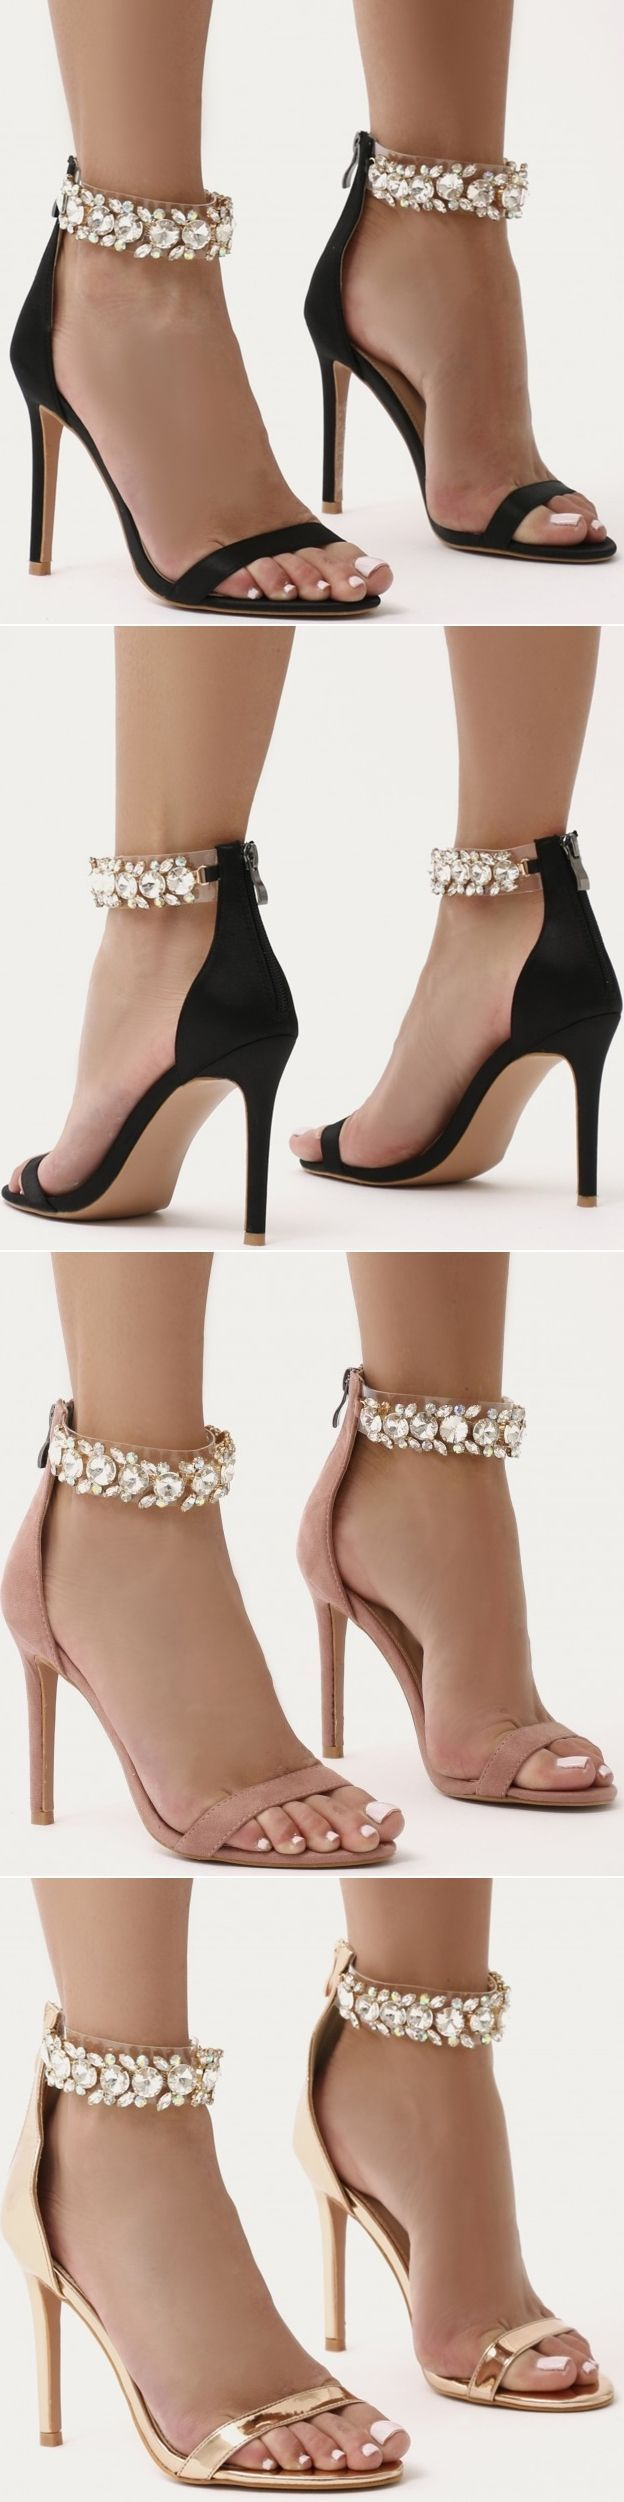 Encrust your ankle with embellishment in a classic barely there. These stiletto high heels feature jewel finished clear perspex ankle straps and simple front toe strap. Put your best foot forward and let your outfit shine. Pair with block colour cold shou #blackhighheelswithstrap